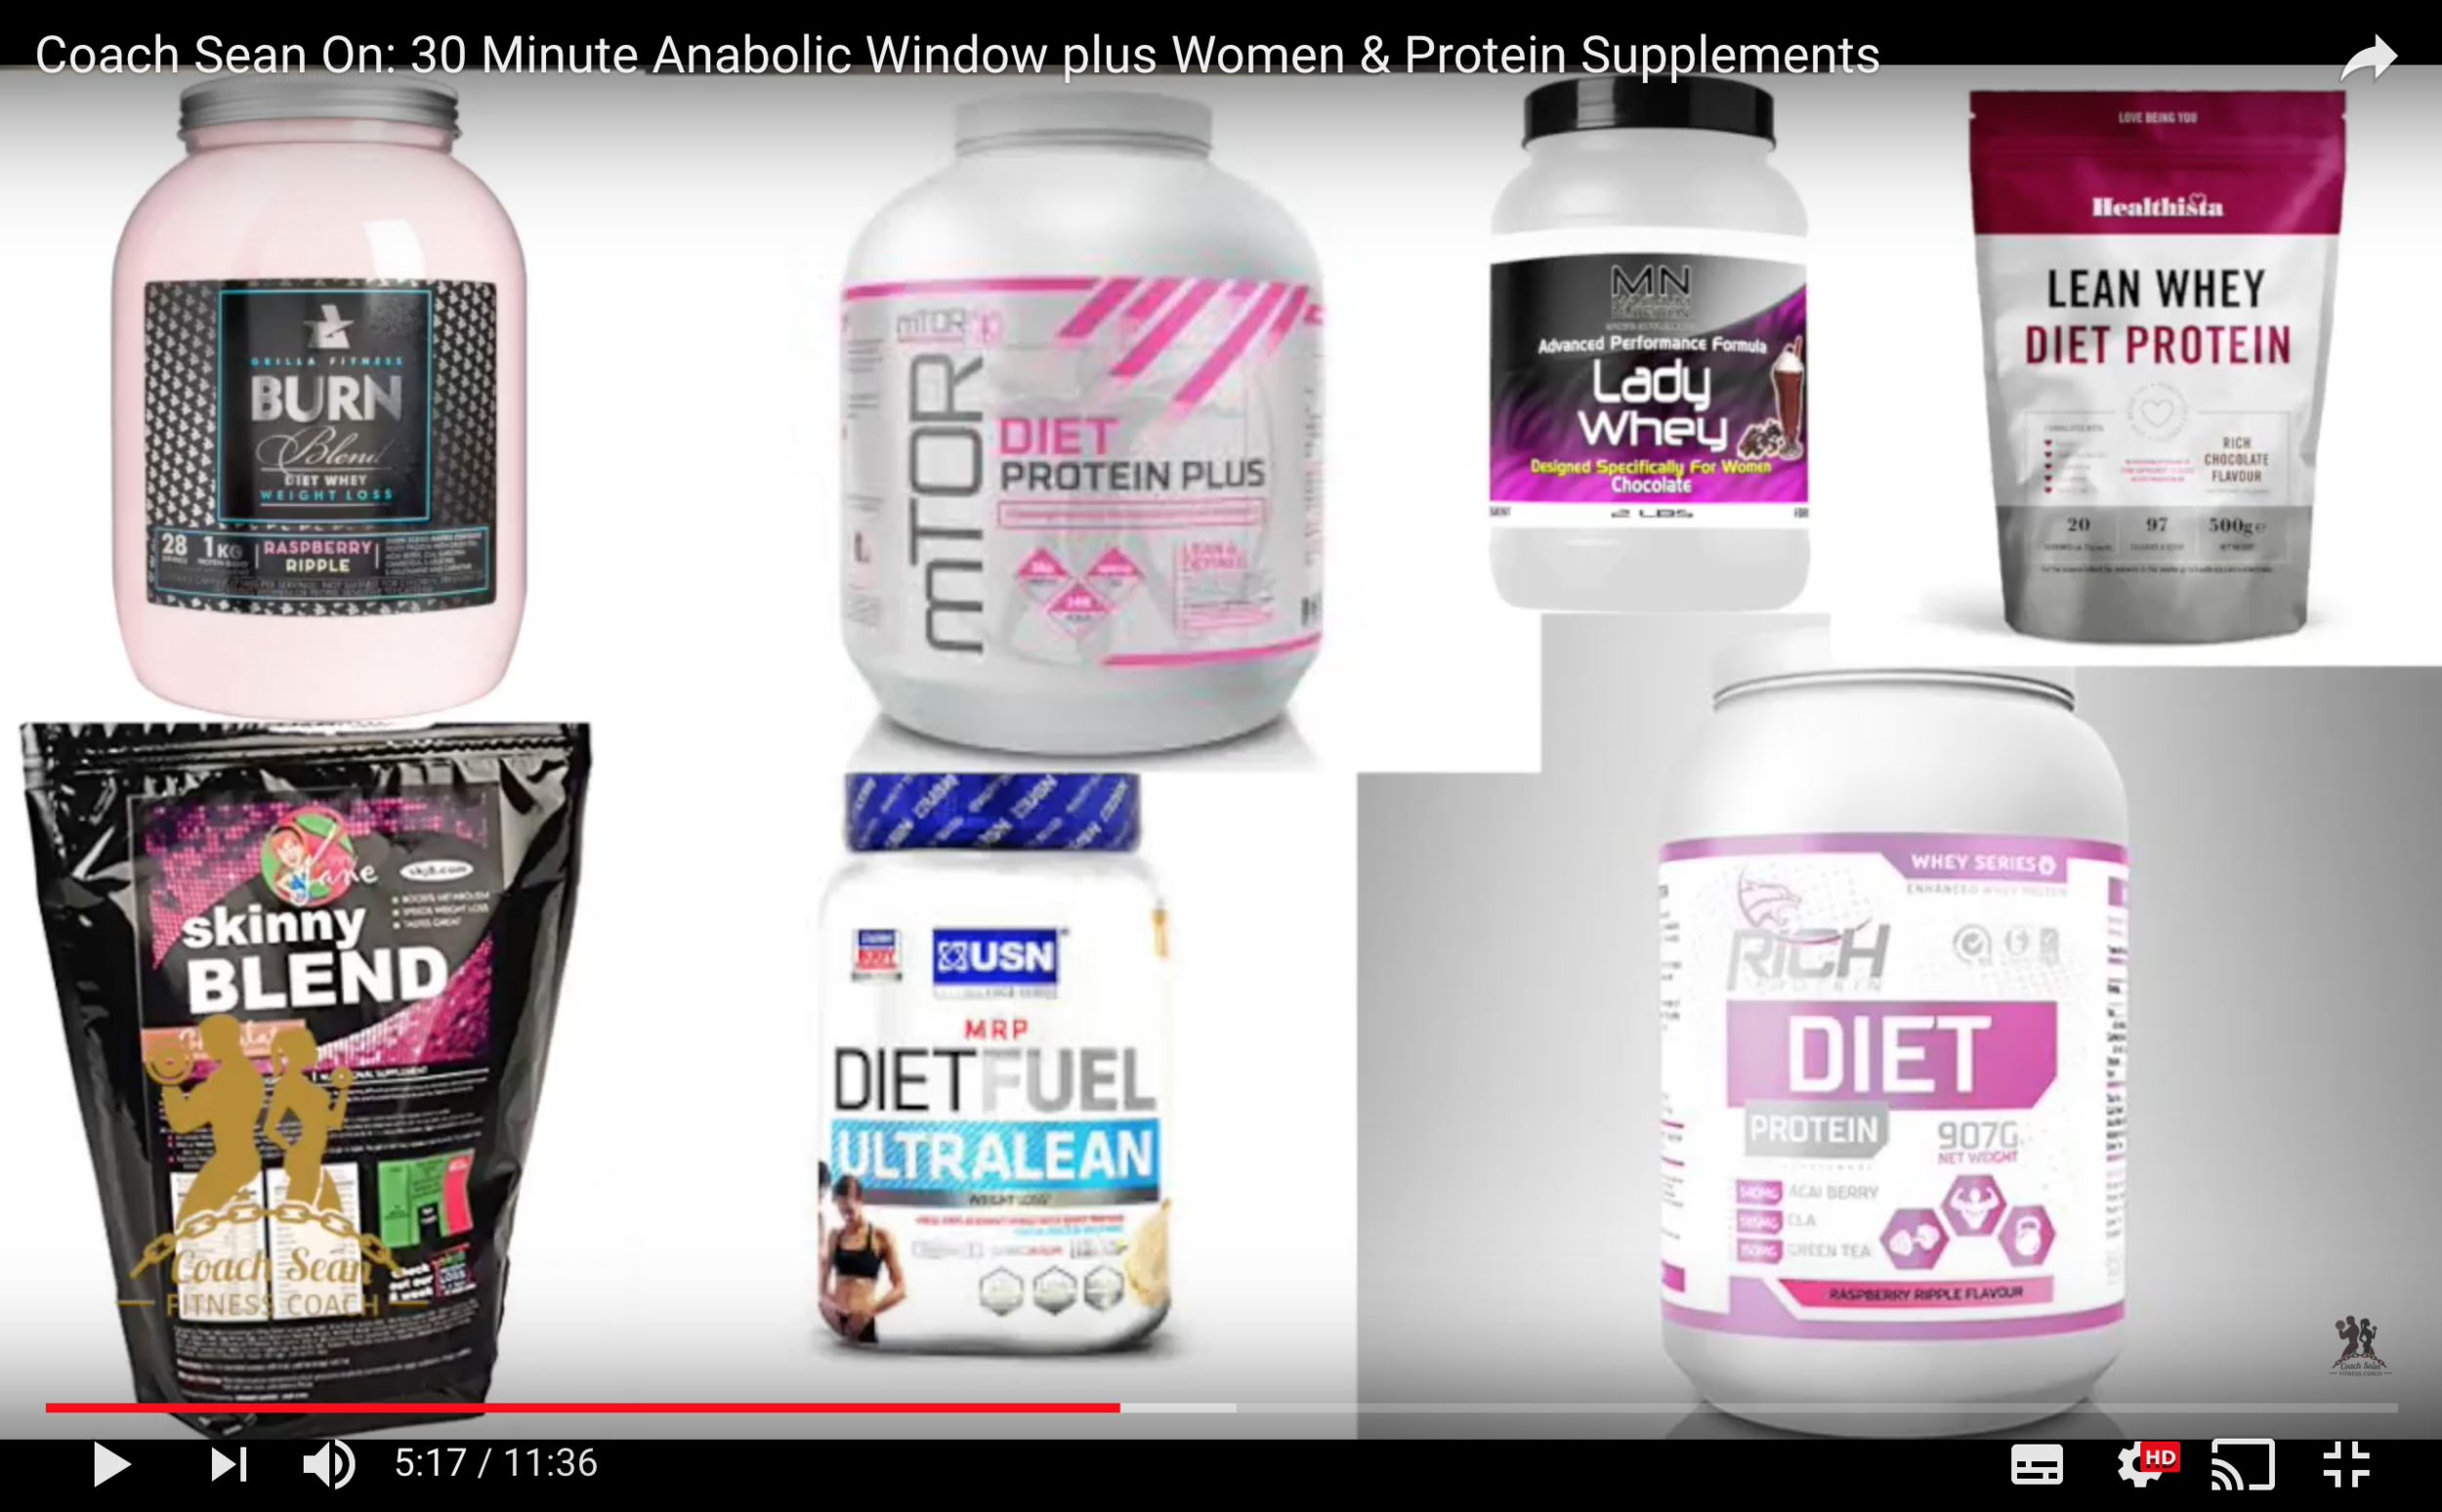 women protein supplements fat loss weight diet toning bulky lean 6 pack whey burn plus